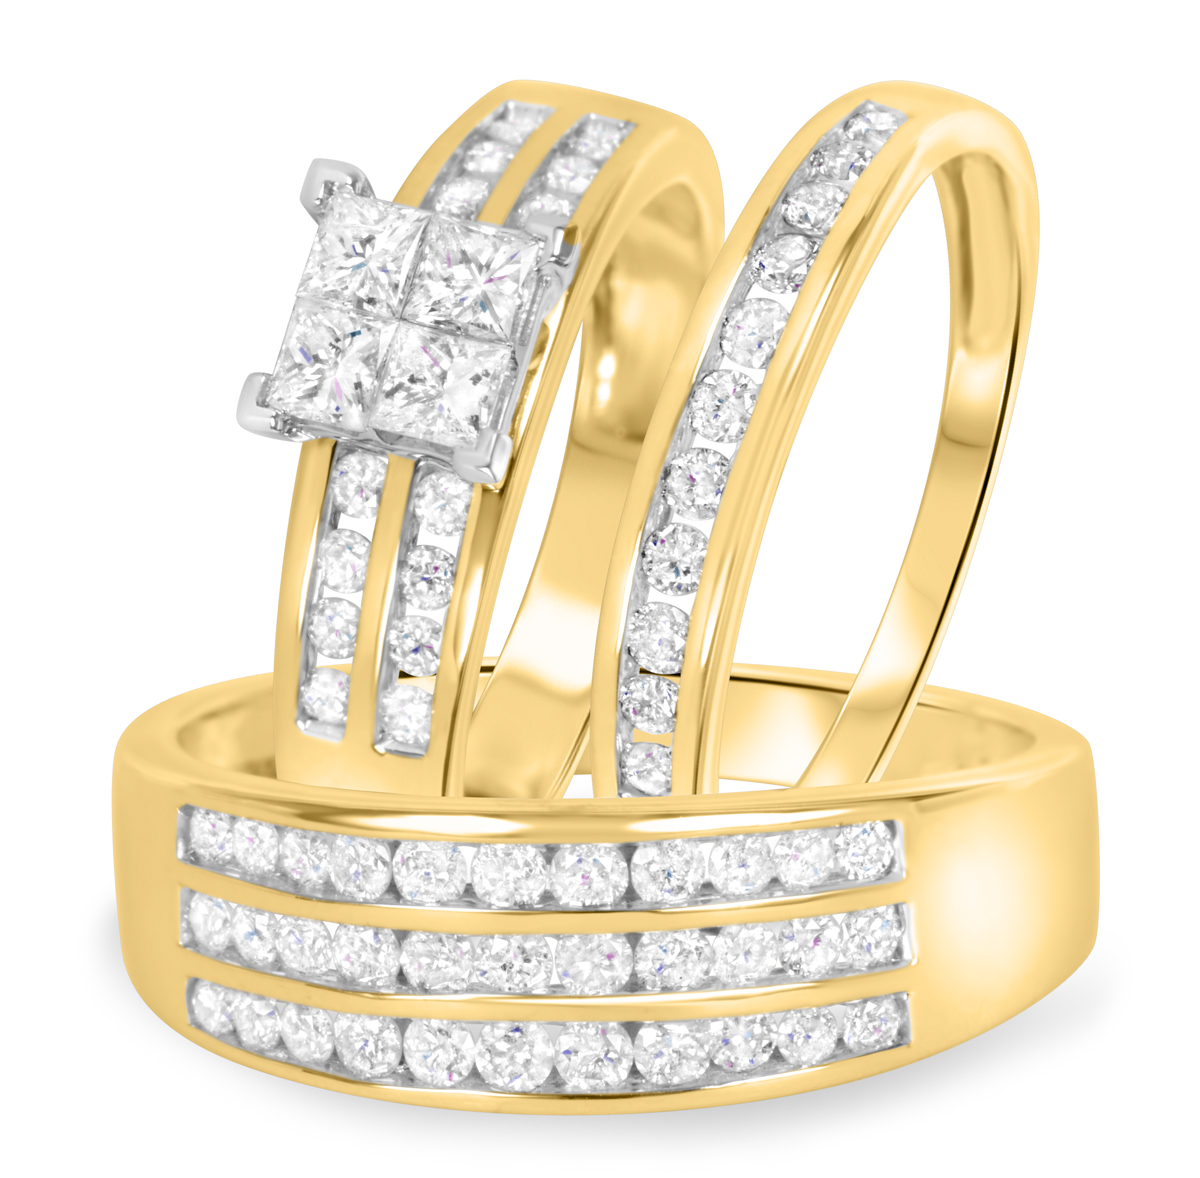 1 5/8 Carat T.W. Diamond Trio Matching Wedding Ring Set 10K Yellow Gold